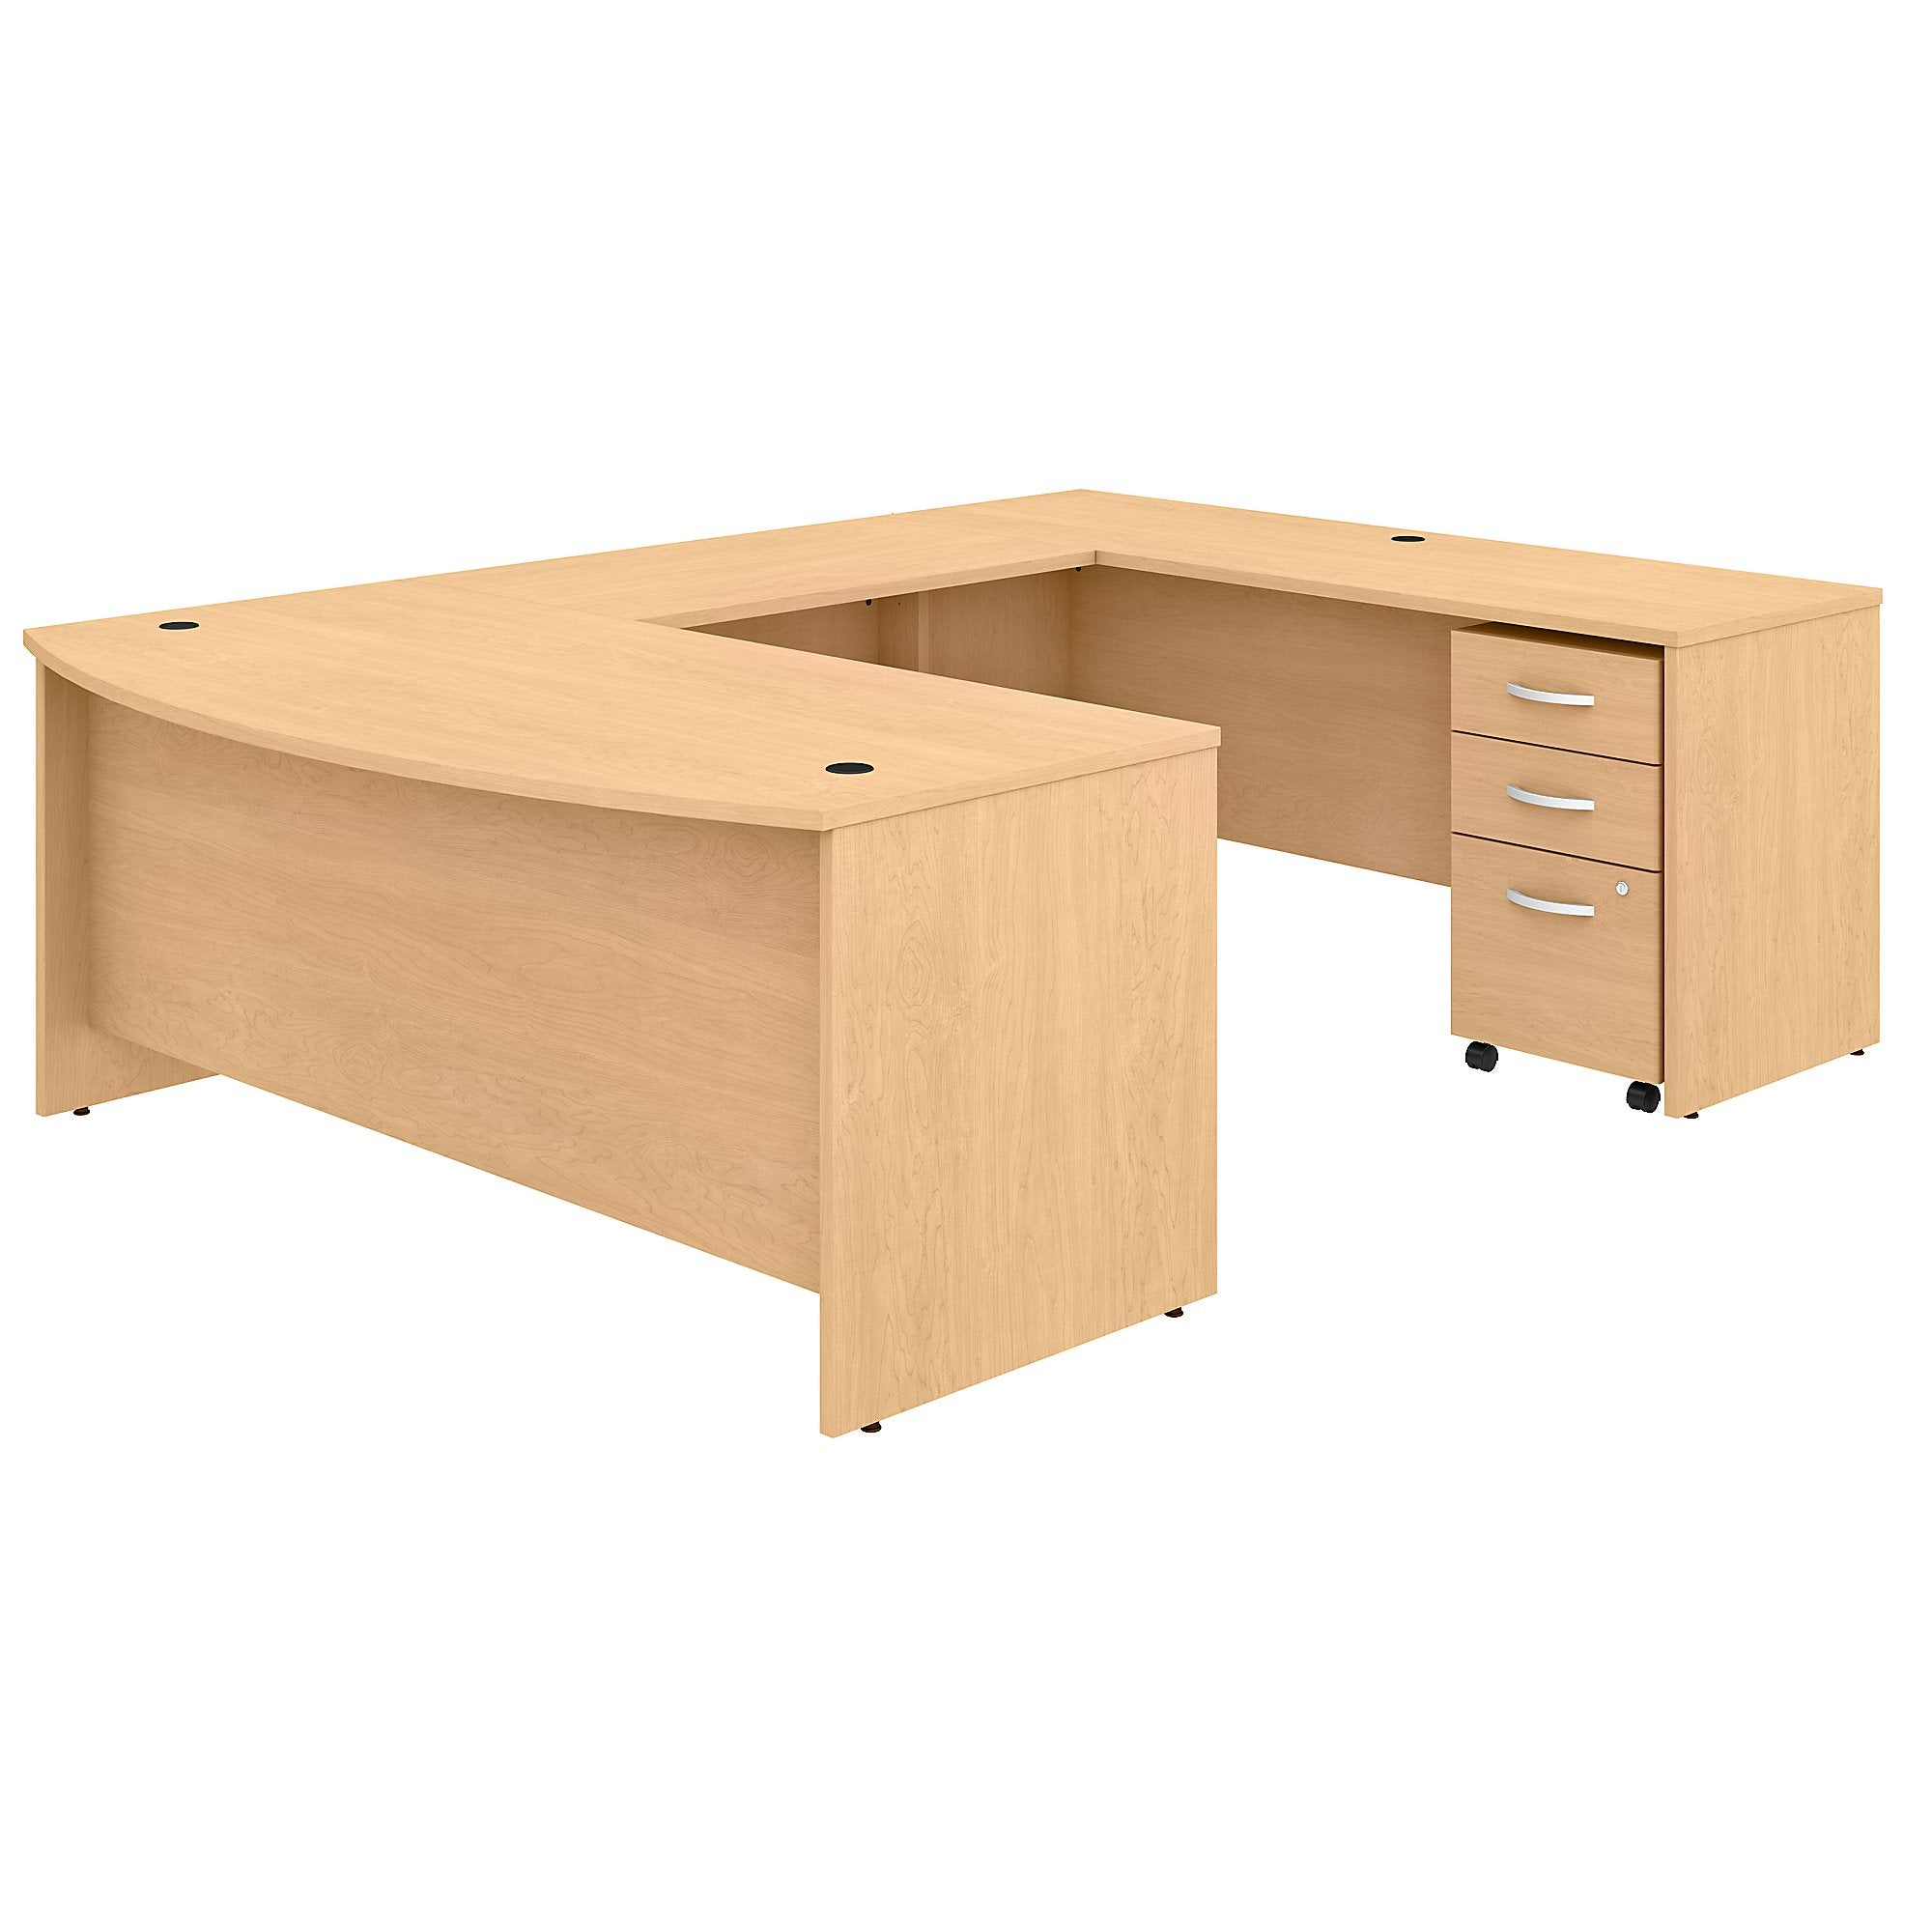 Studio C 72W x 36D U Shaped Desk with Mobile File Cabinet